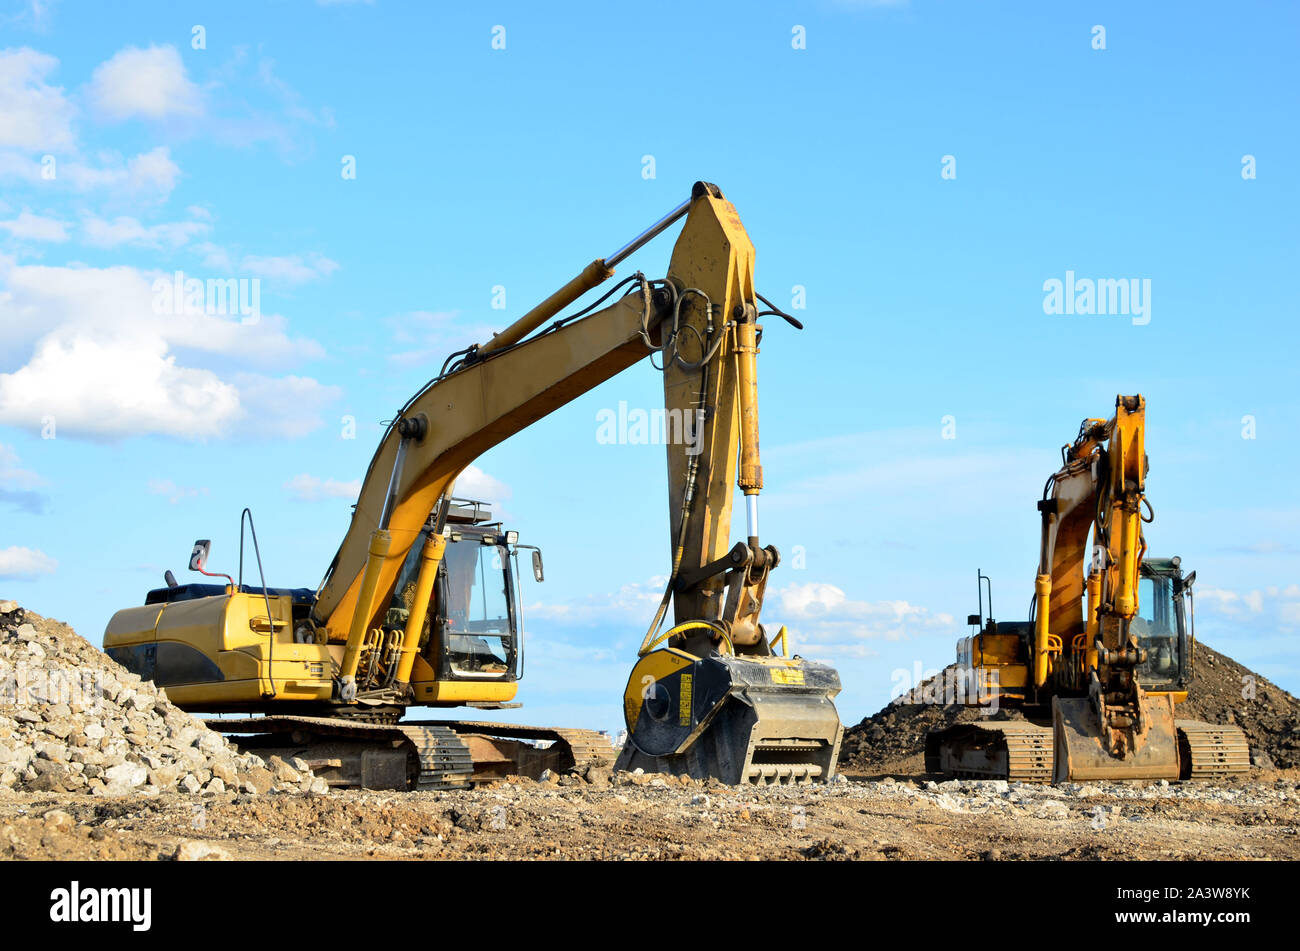 Two yellow excavators at a construction site. Excavator with crusher bucket for crushing concrete. Construction waste recycling for construction mix. Stock Photo